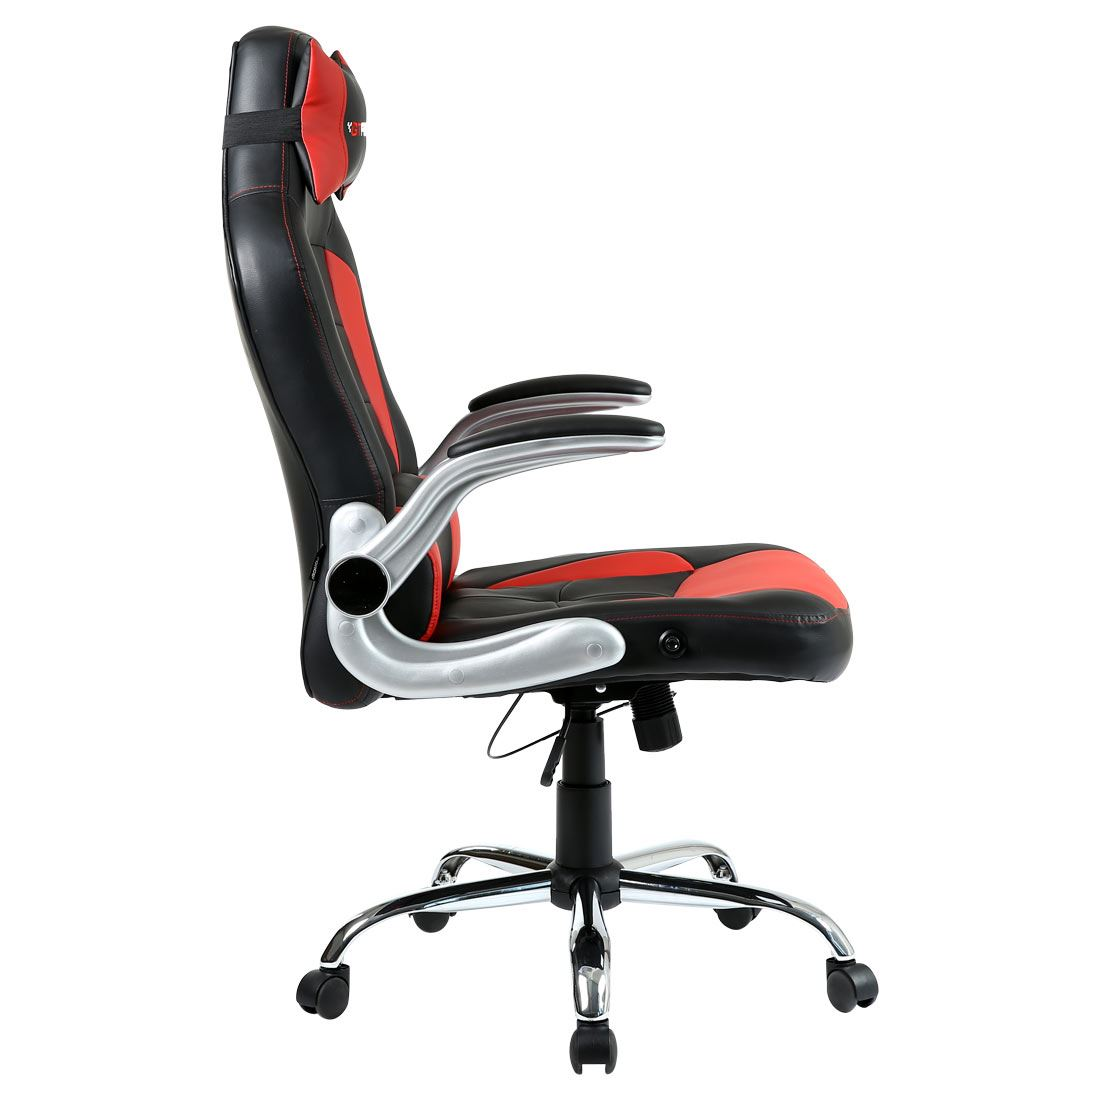 GTFORCE-BLAZE-RECLINING-LEATHER-SPORTS-RACING-OFFICE-DESK-CHAIR-GAMING-COMPUTER